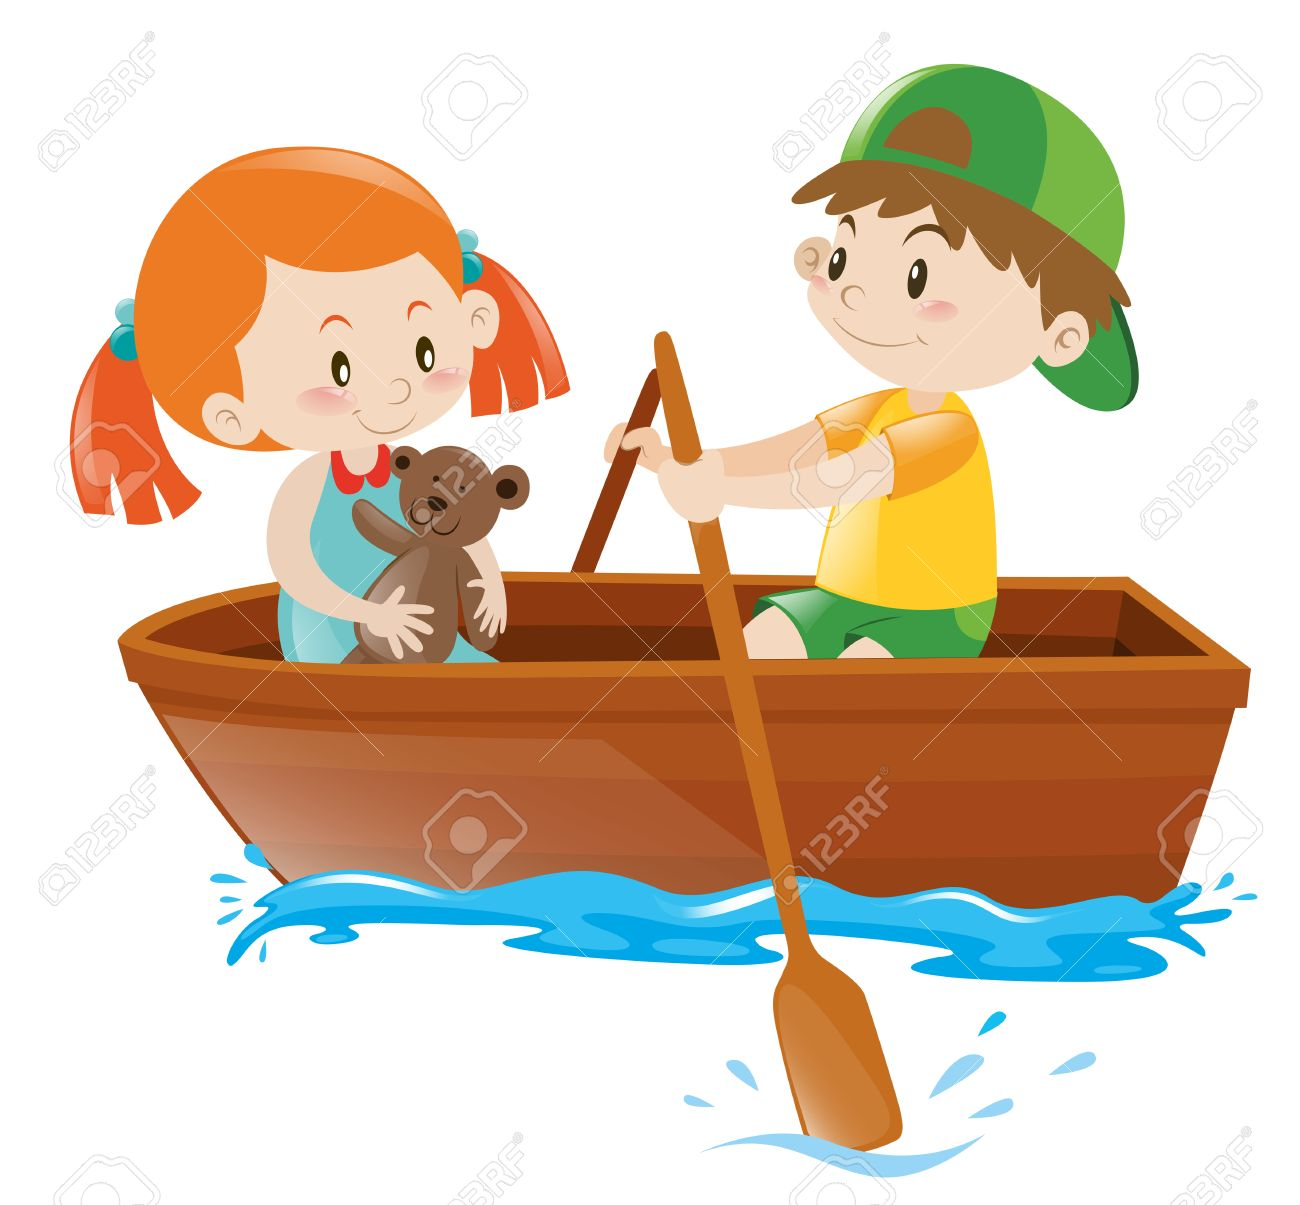 Boy rowing boat with girl as passenger illustration.